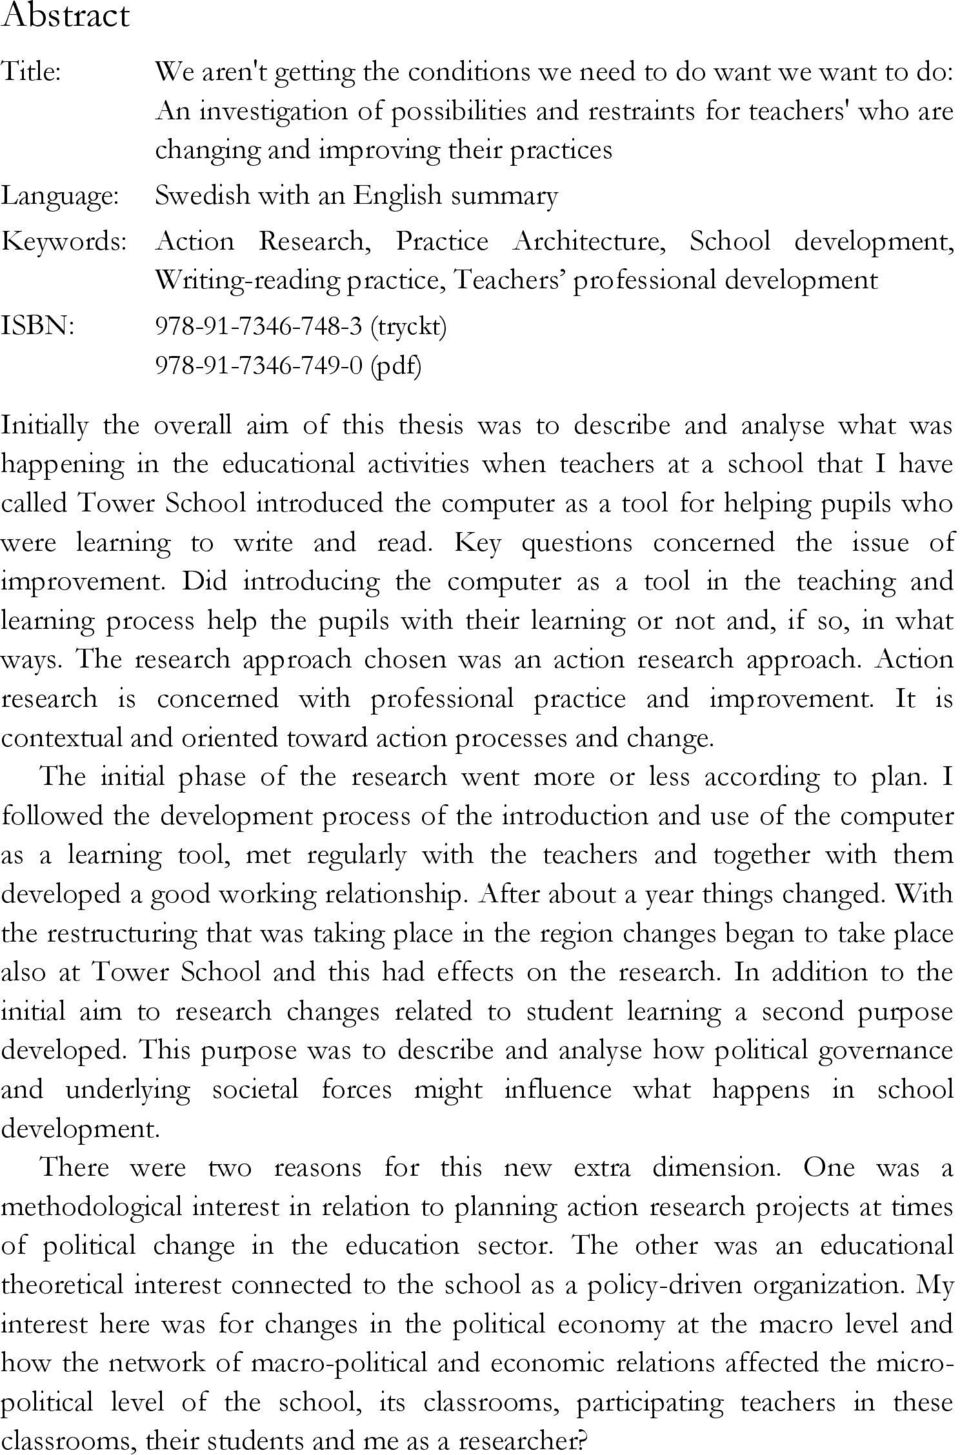 (tryckt) 978-91-7346-749-0 (pdf) Initially the overall aim of this thesis was to describe and analyse what was happening in the educational activities when teachers at a school that I have called